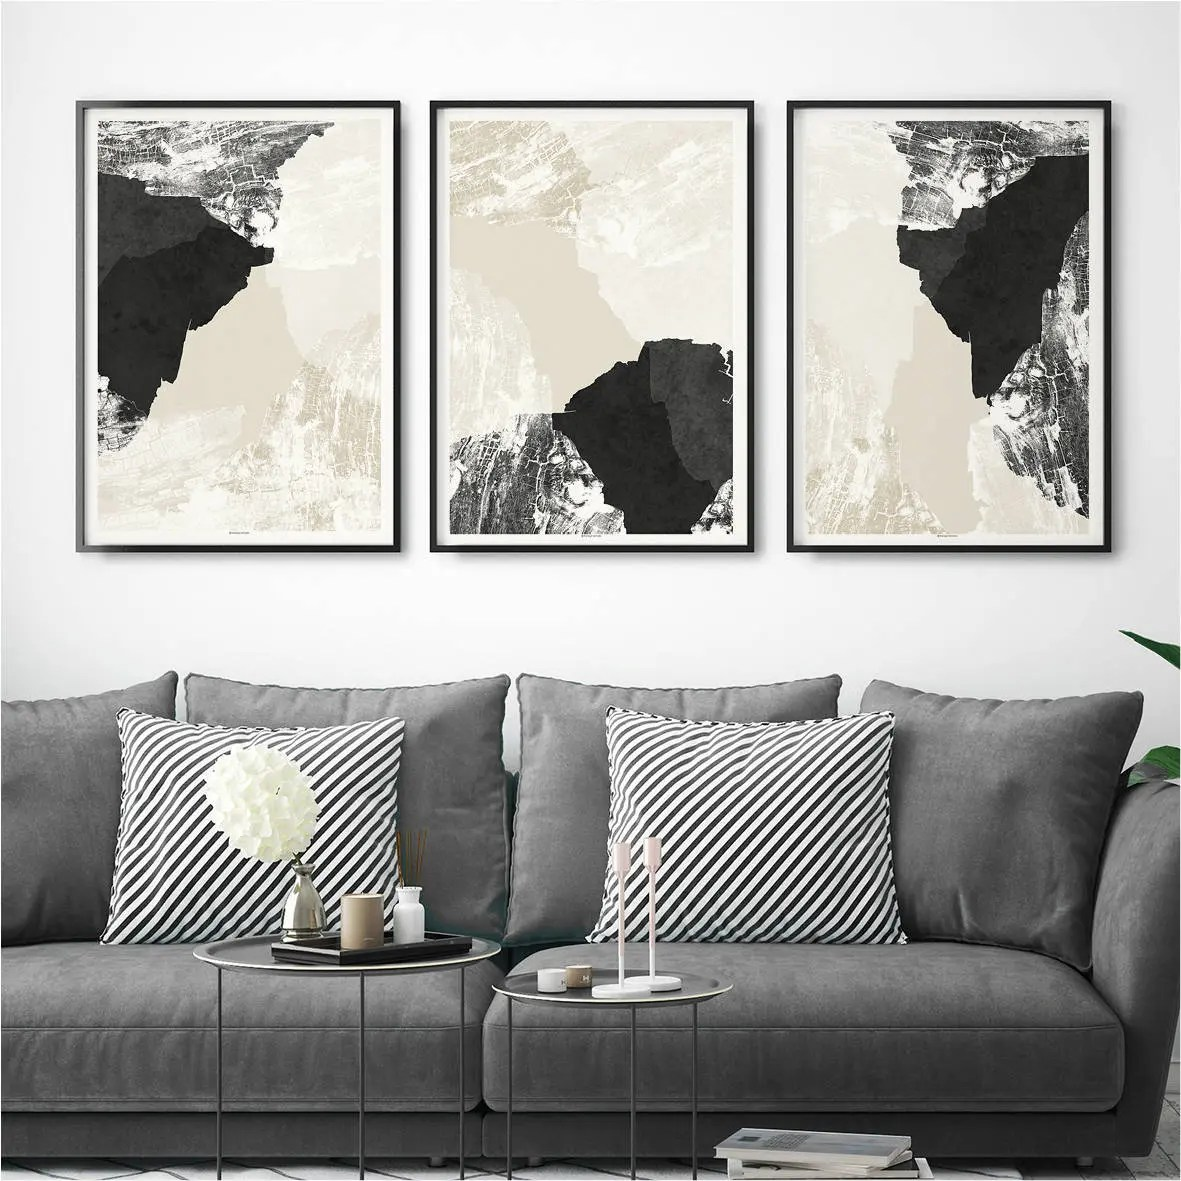 modern living room wall art media cabinet etsy set of 3 abstract prints minimalist fine print large triptych decor